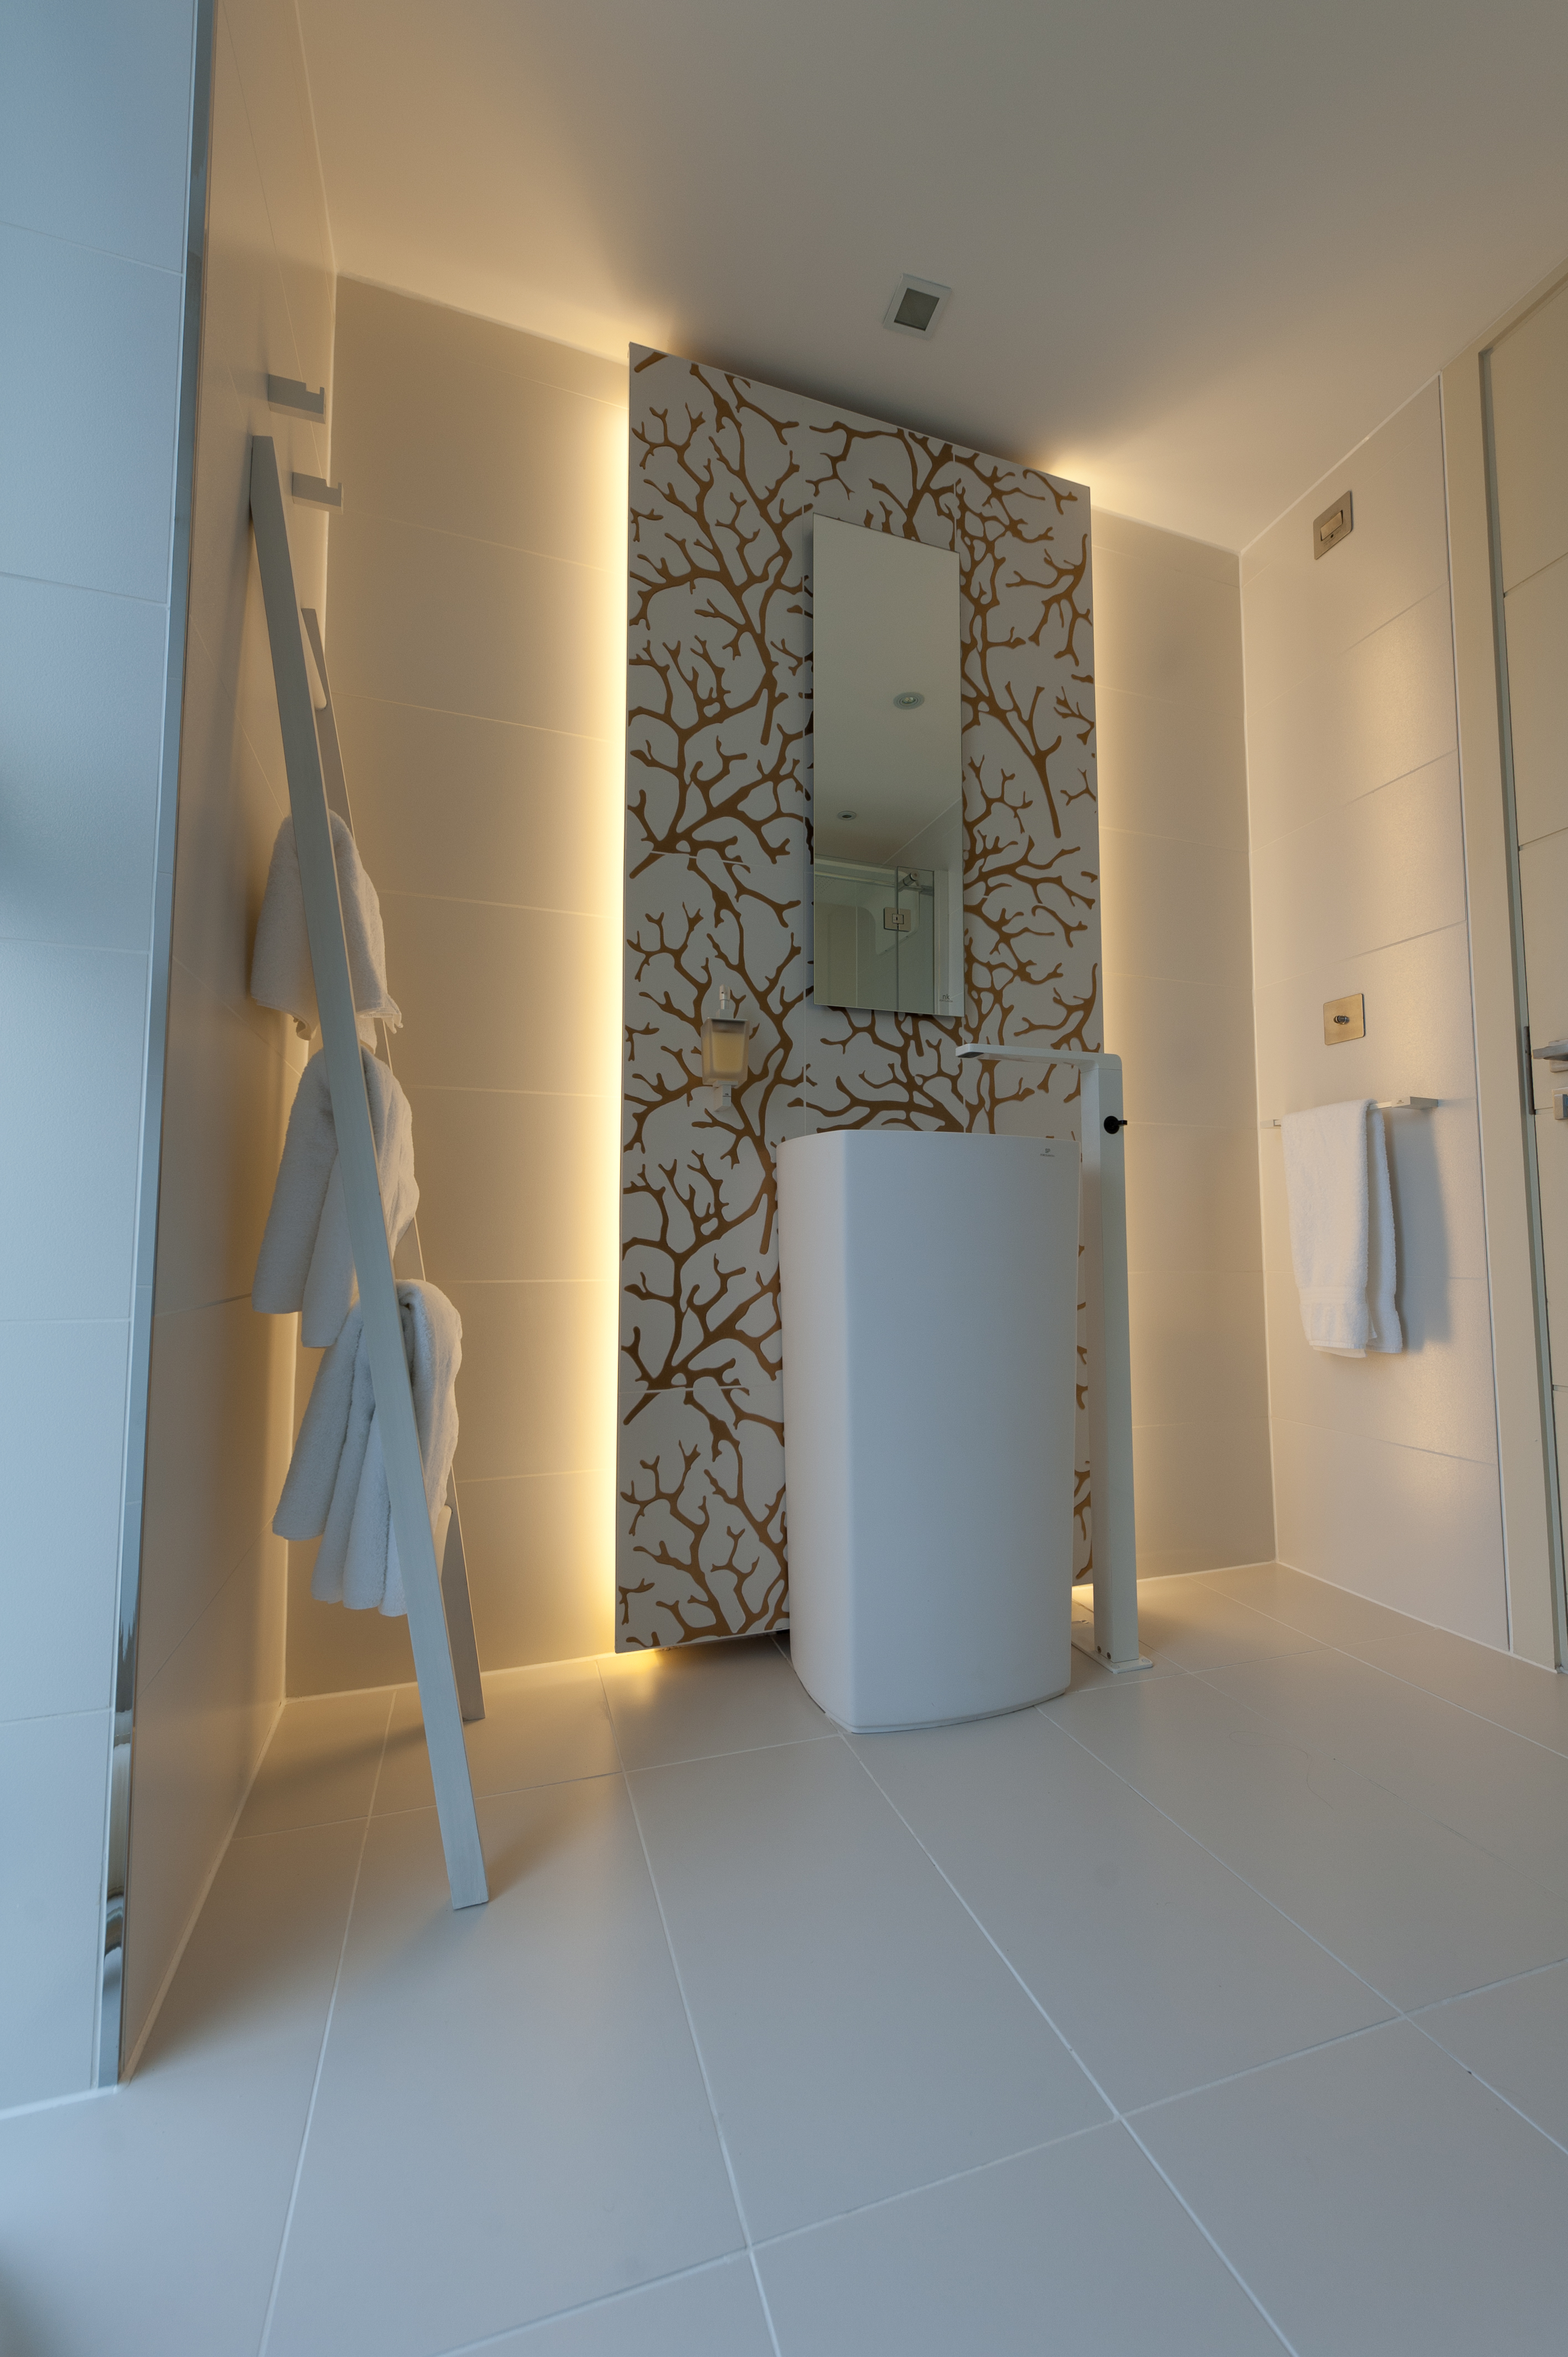 Krion freestanding basin with porcelanosa tiles and LED lighting.